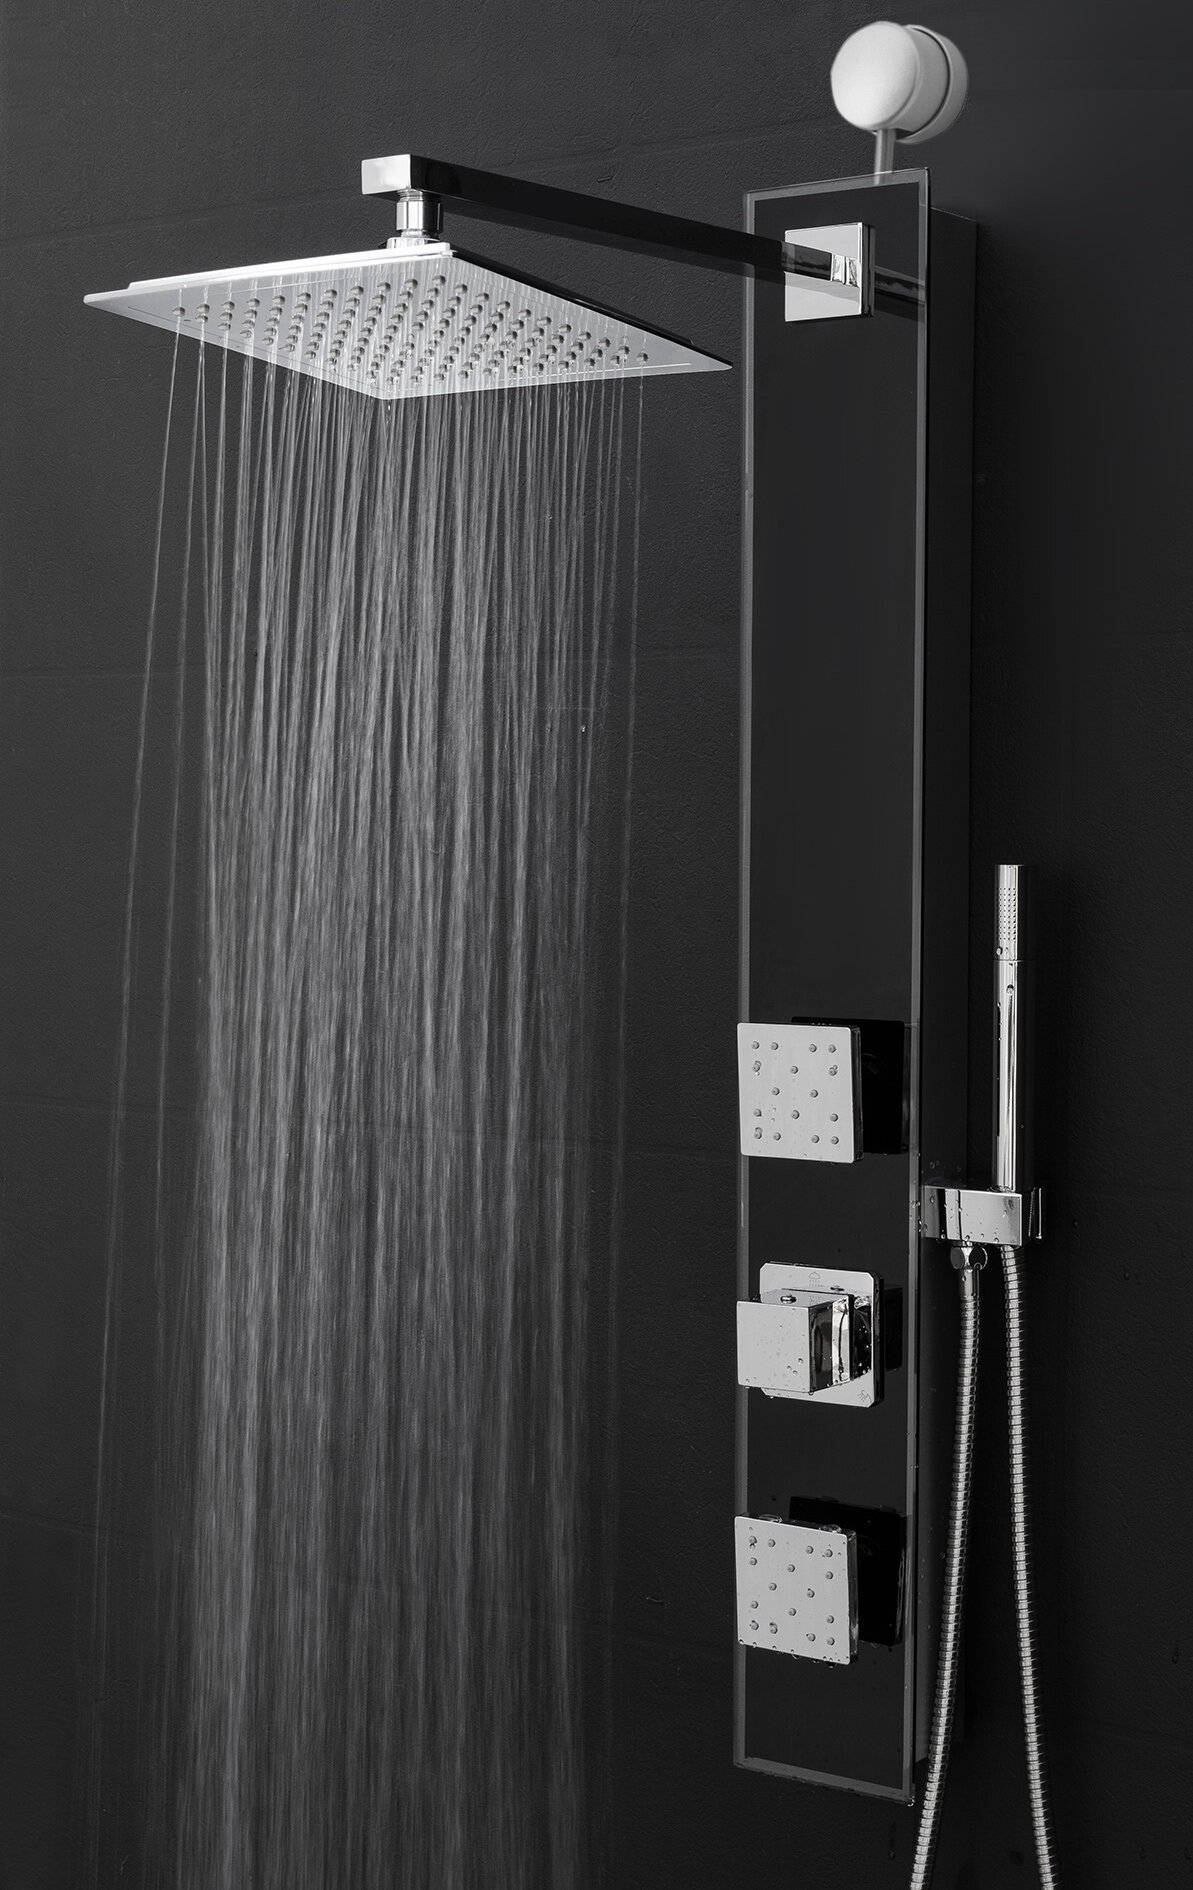 Diverter 35 43 Shower Panel With Adjule Head And Mage Function